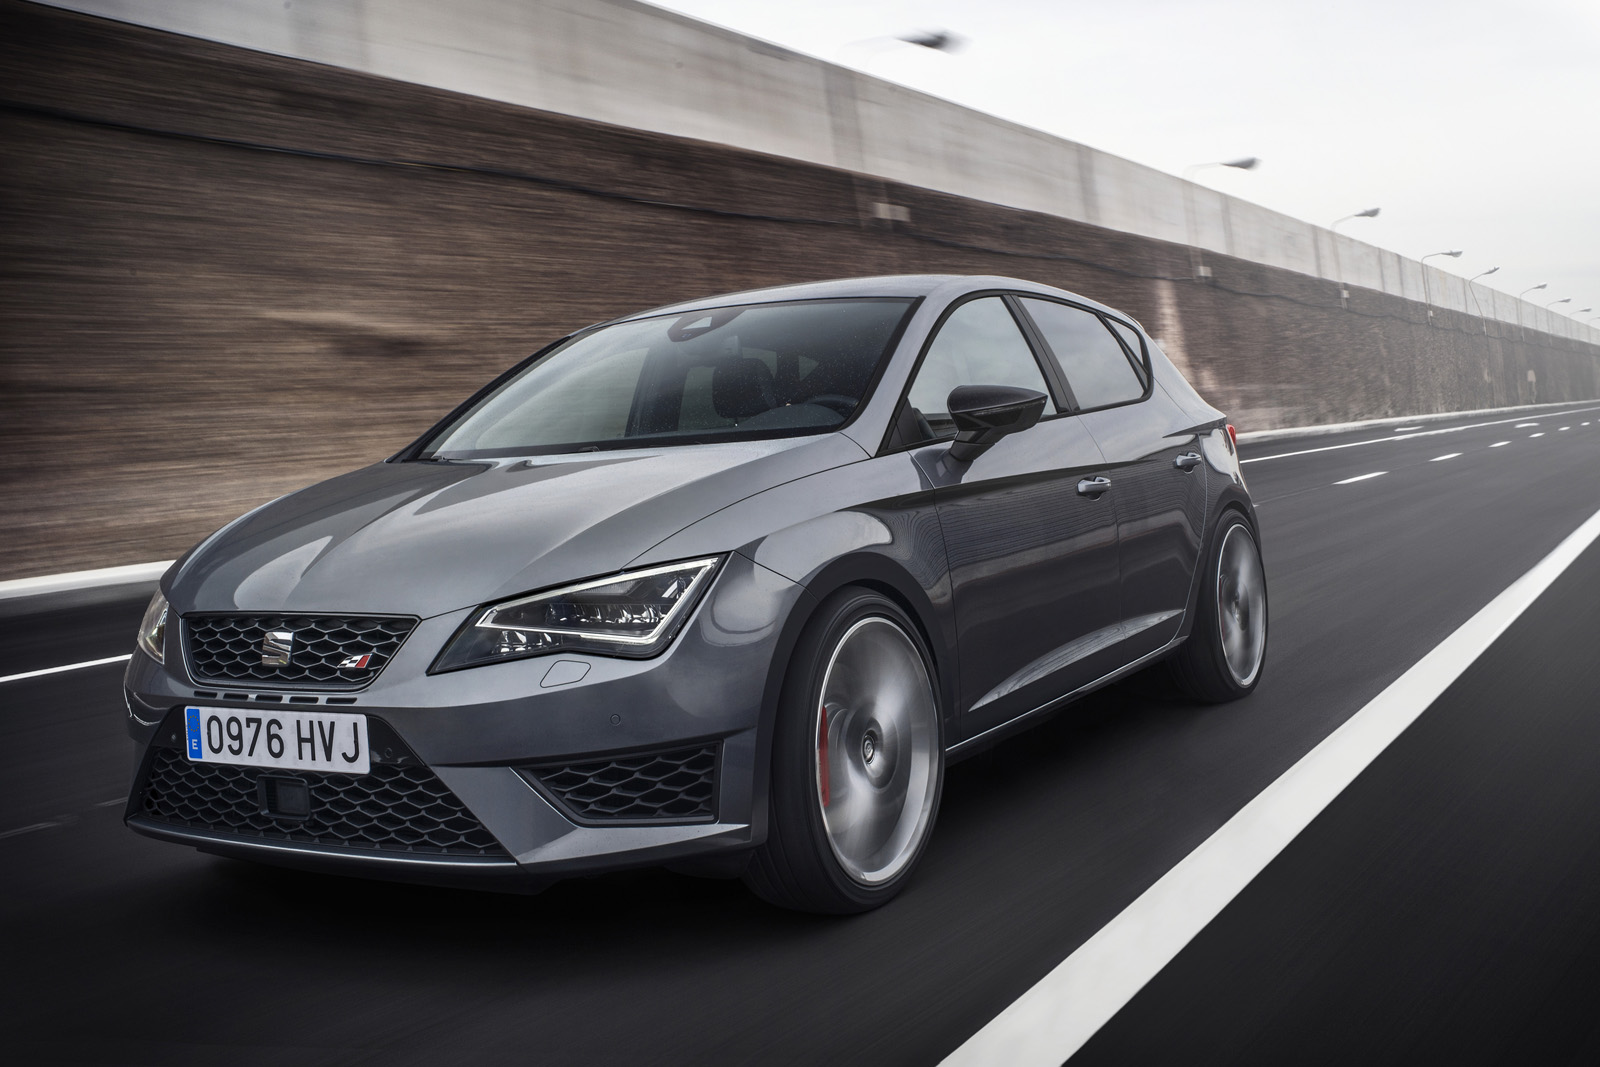 new-photos-and-videos-show-280-hp-seat-leon-cupra-in-detail_12